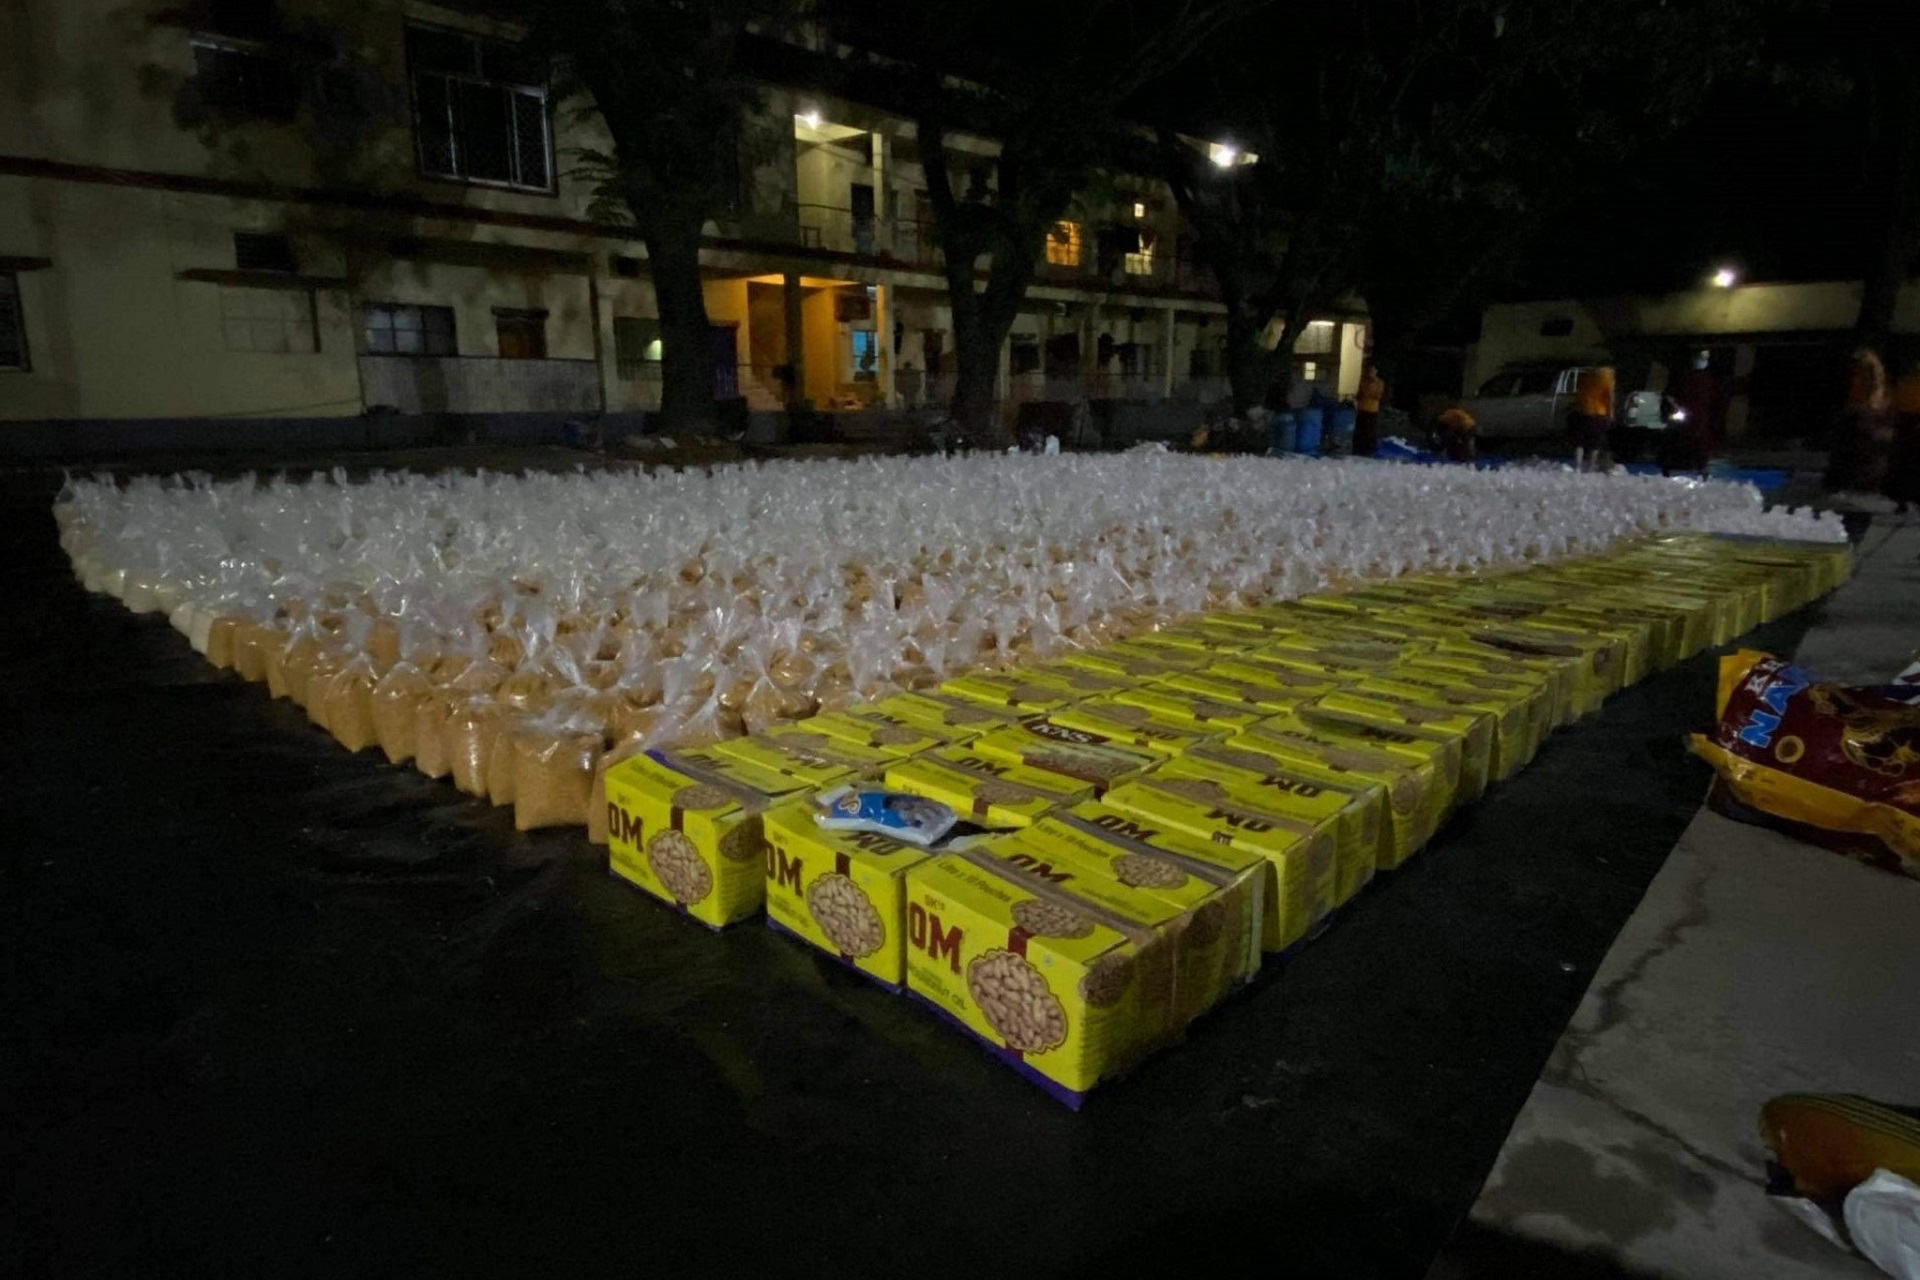 Food-parcels that have been prepared for distribution